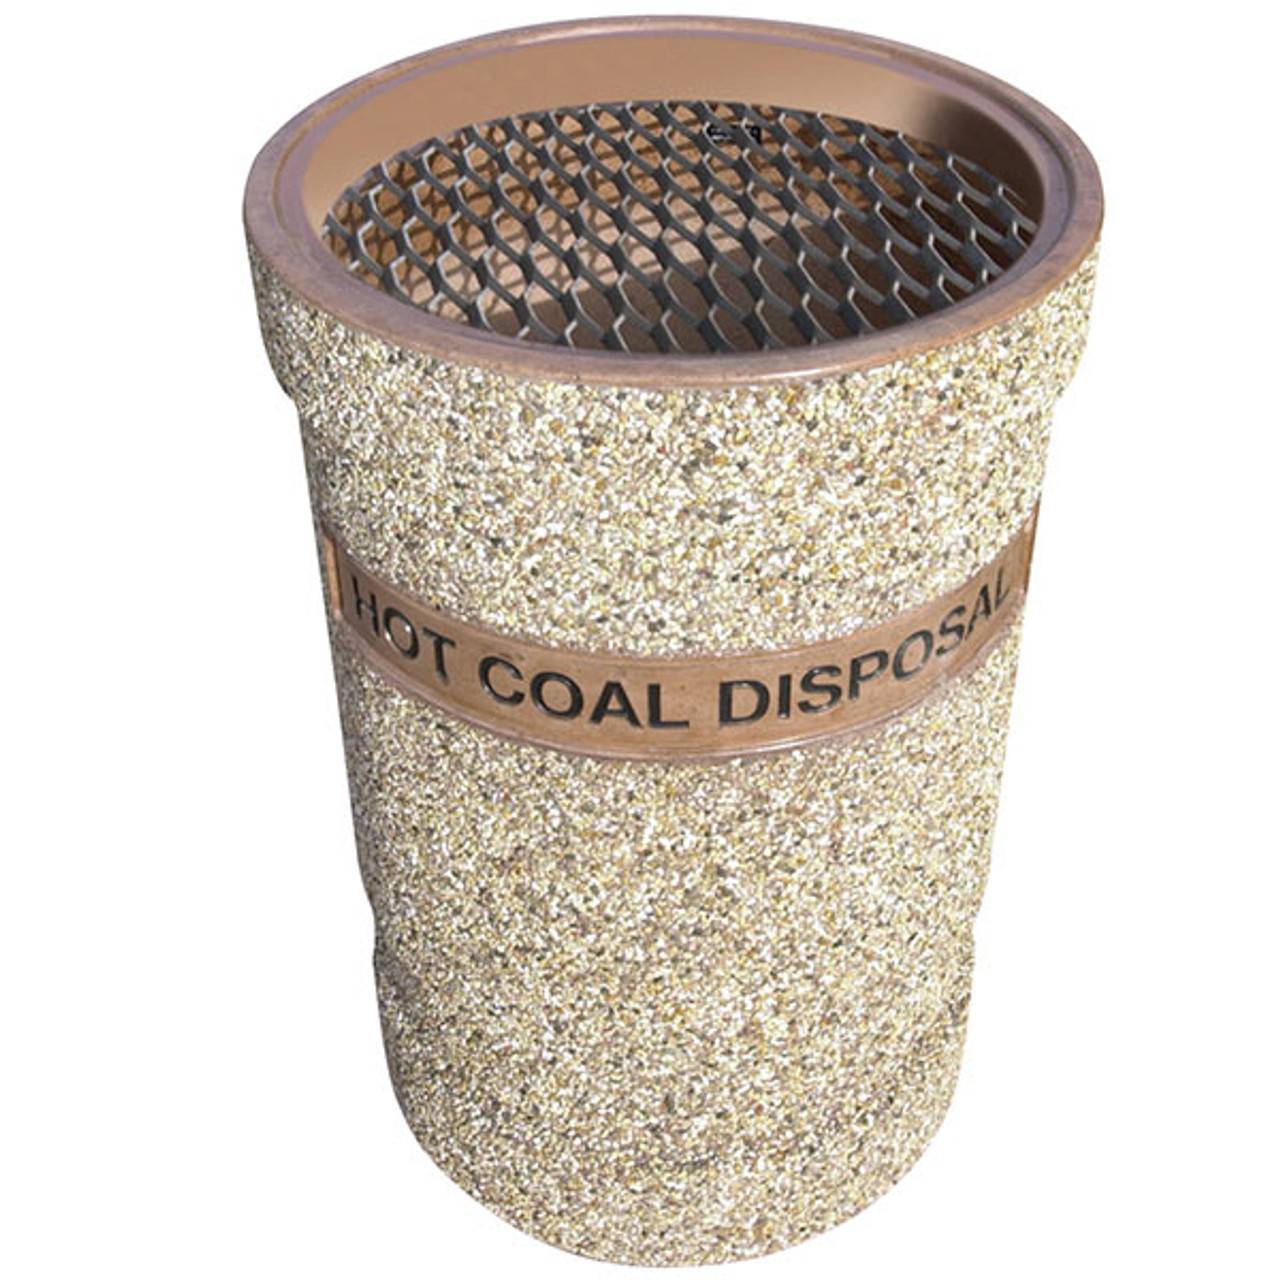 41 Gallon Concrete Hot Coal Disposal Outdoor Waste Container TF1131 Exposed Aggregate